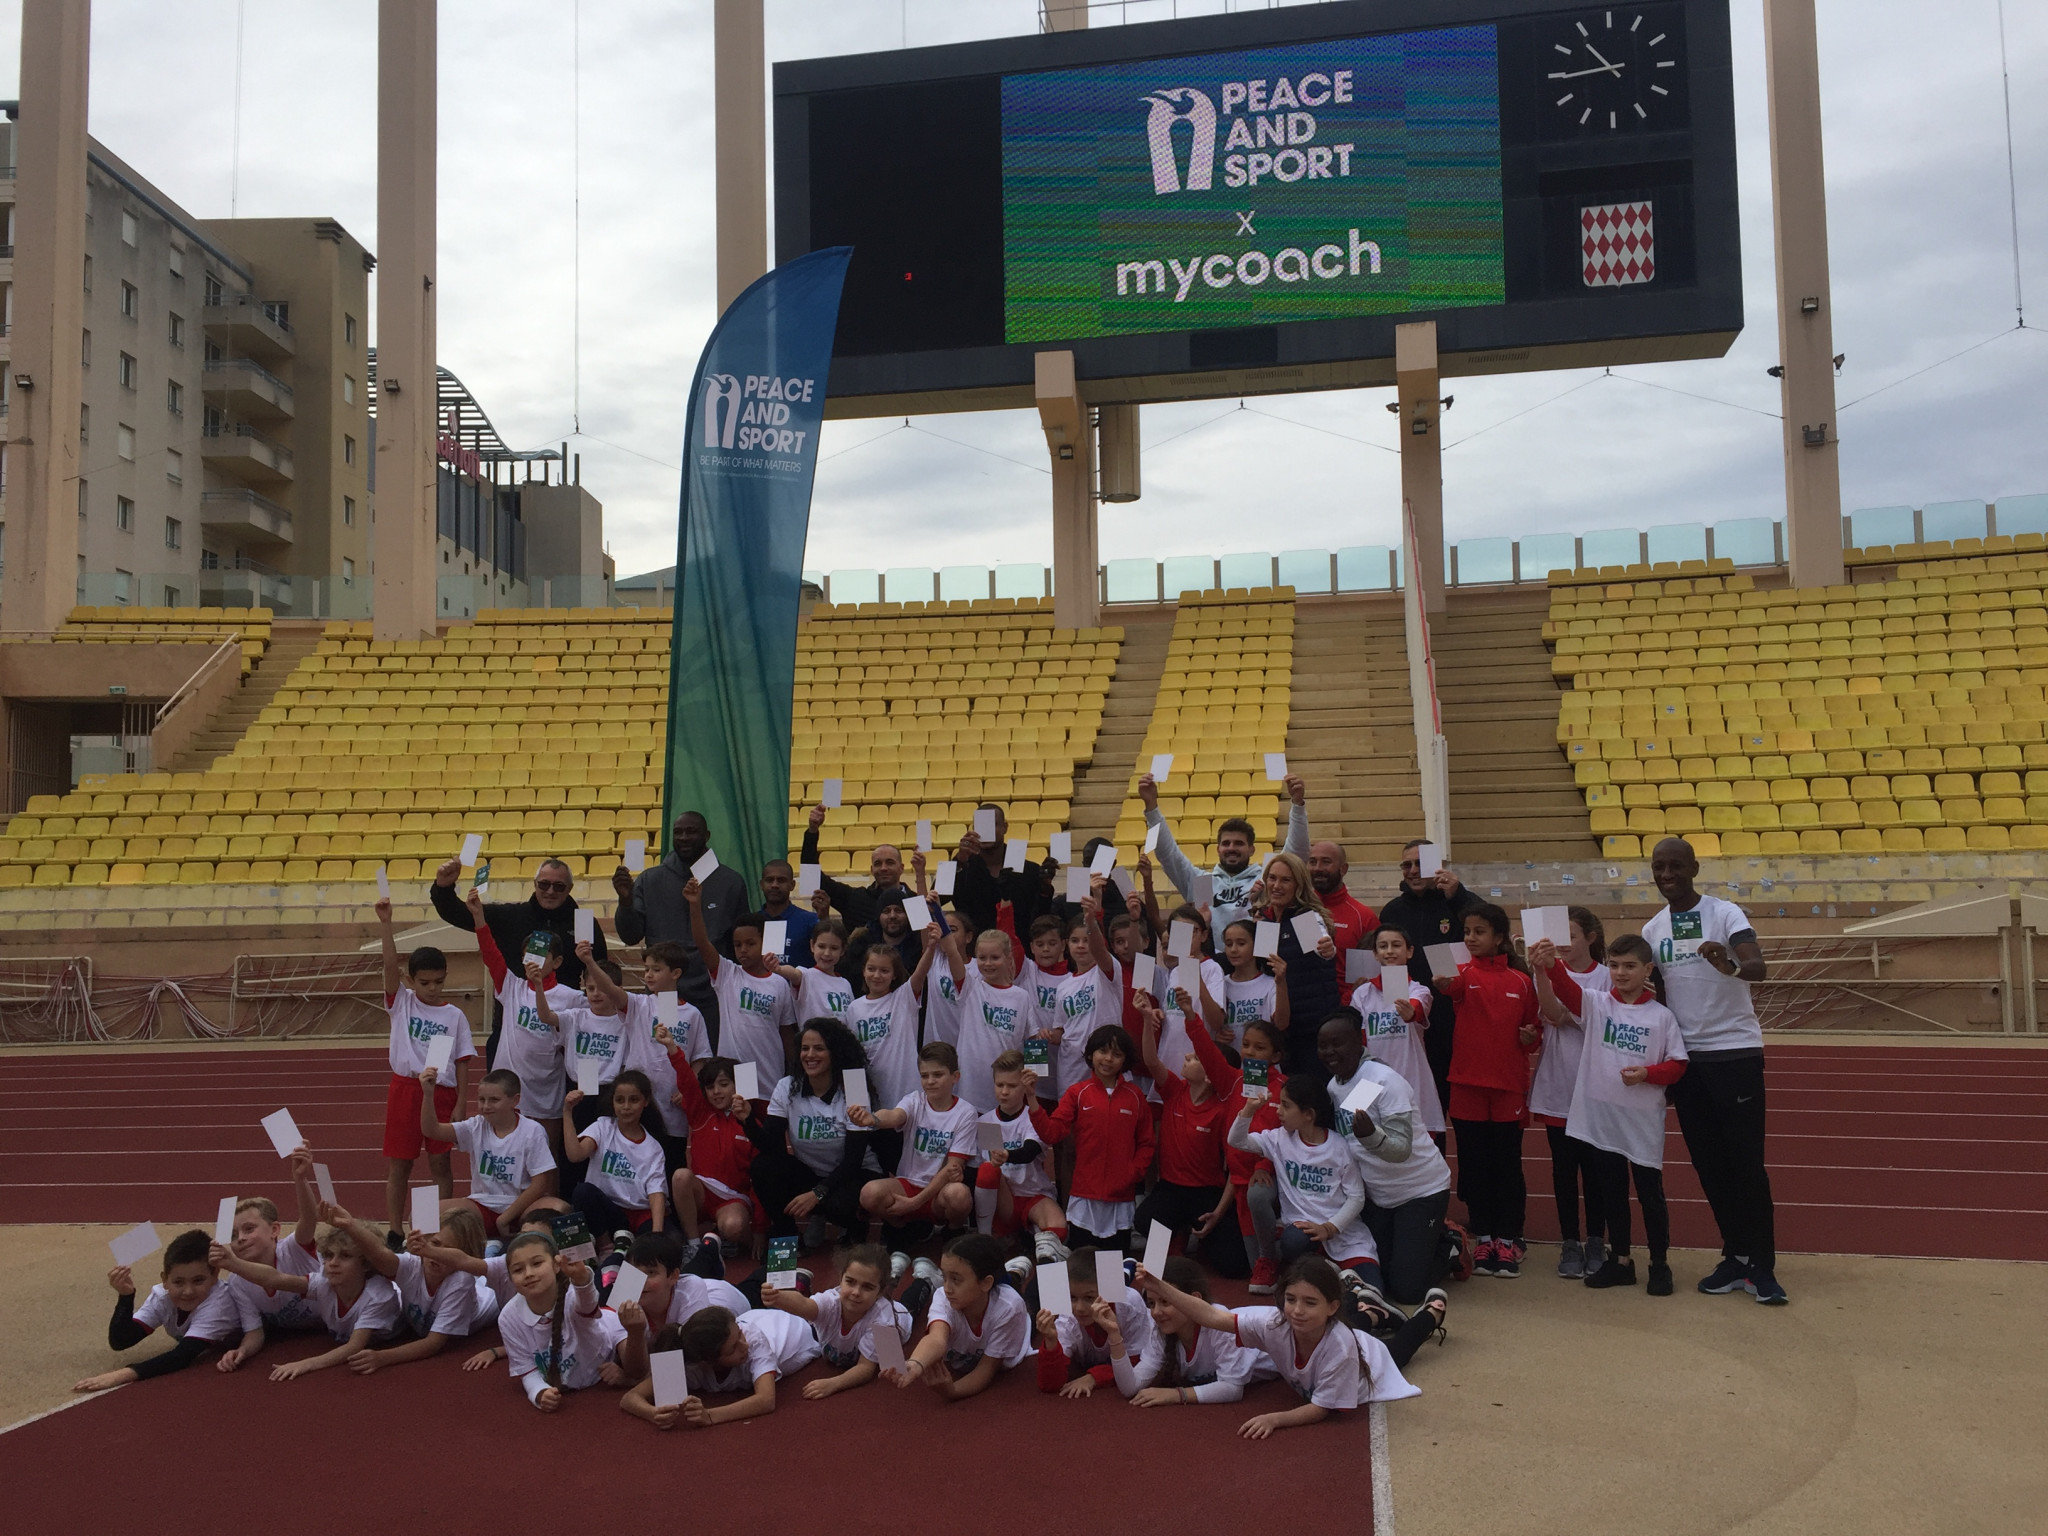 The children and Champions for Peace all showed a white card, a Peace and Sport symbolic initiative ©ITG